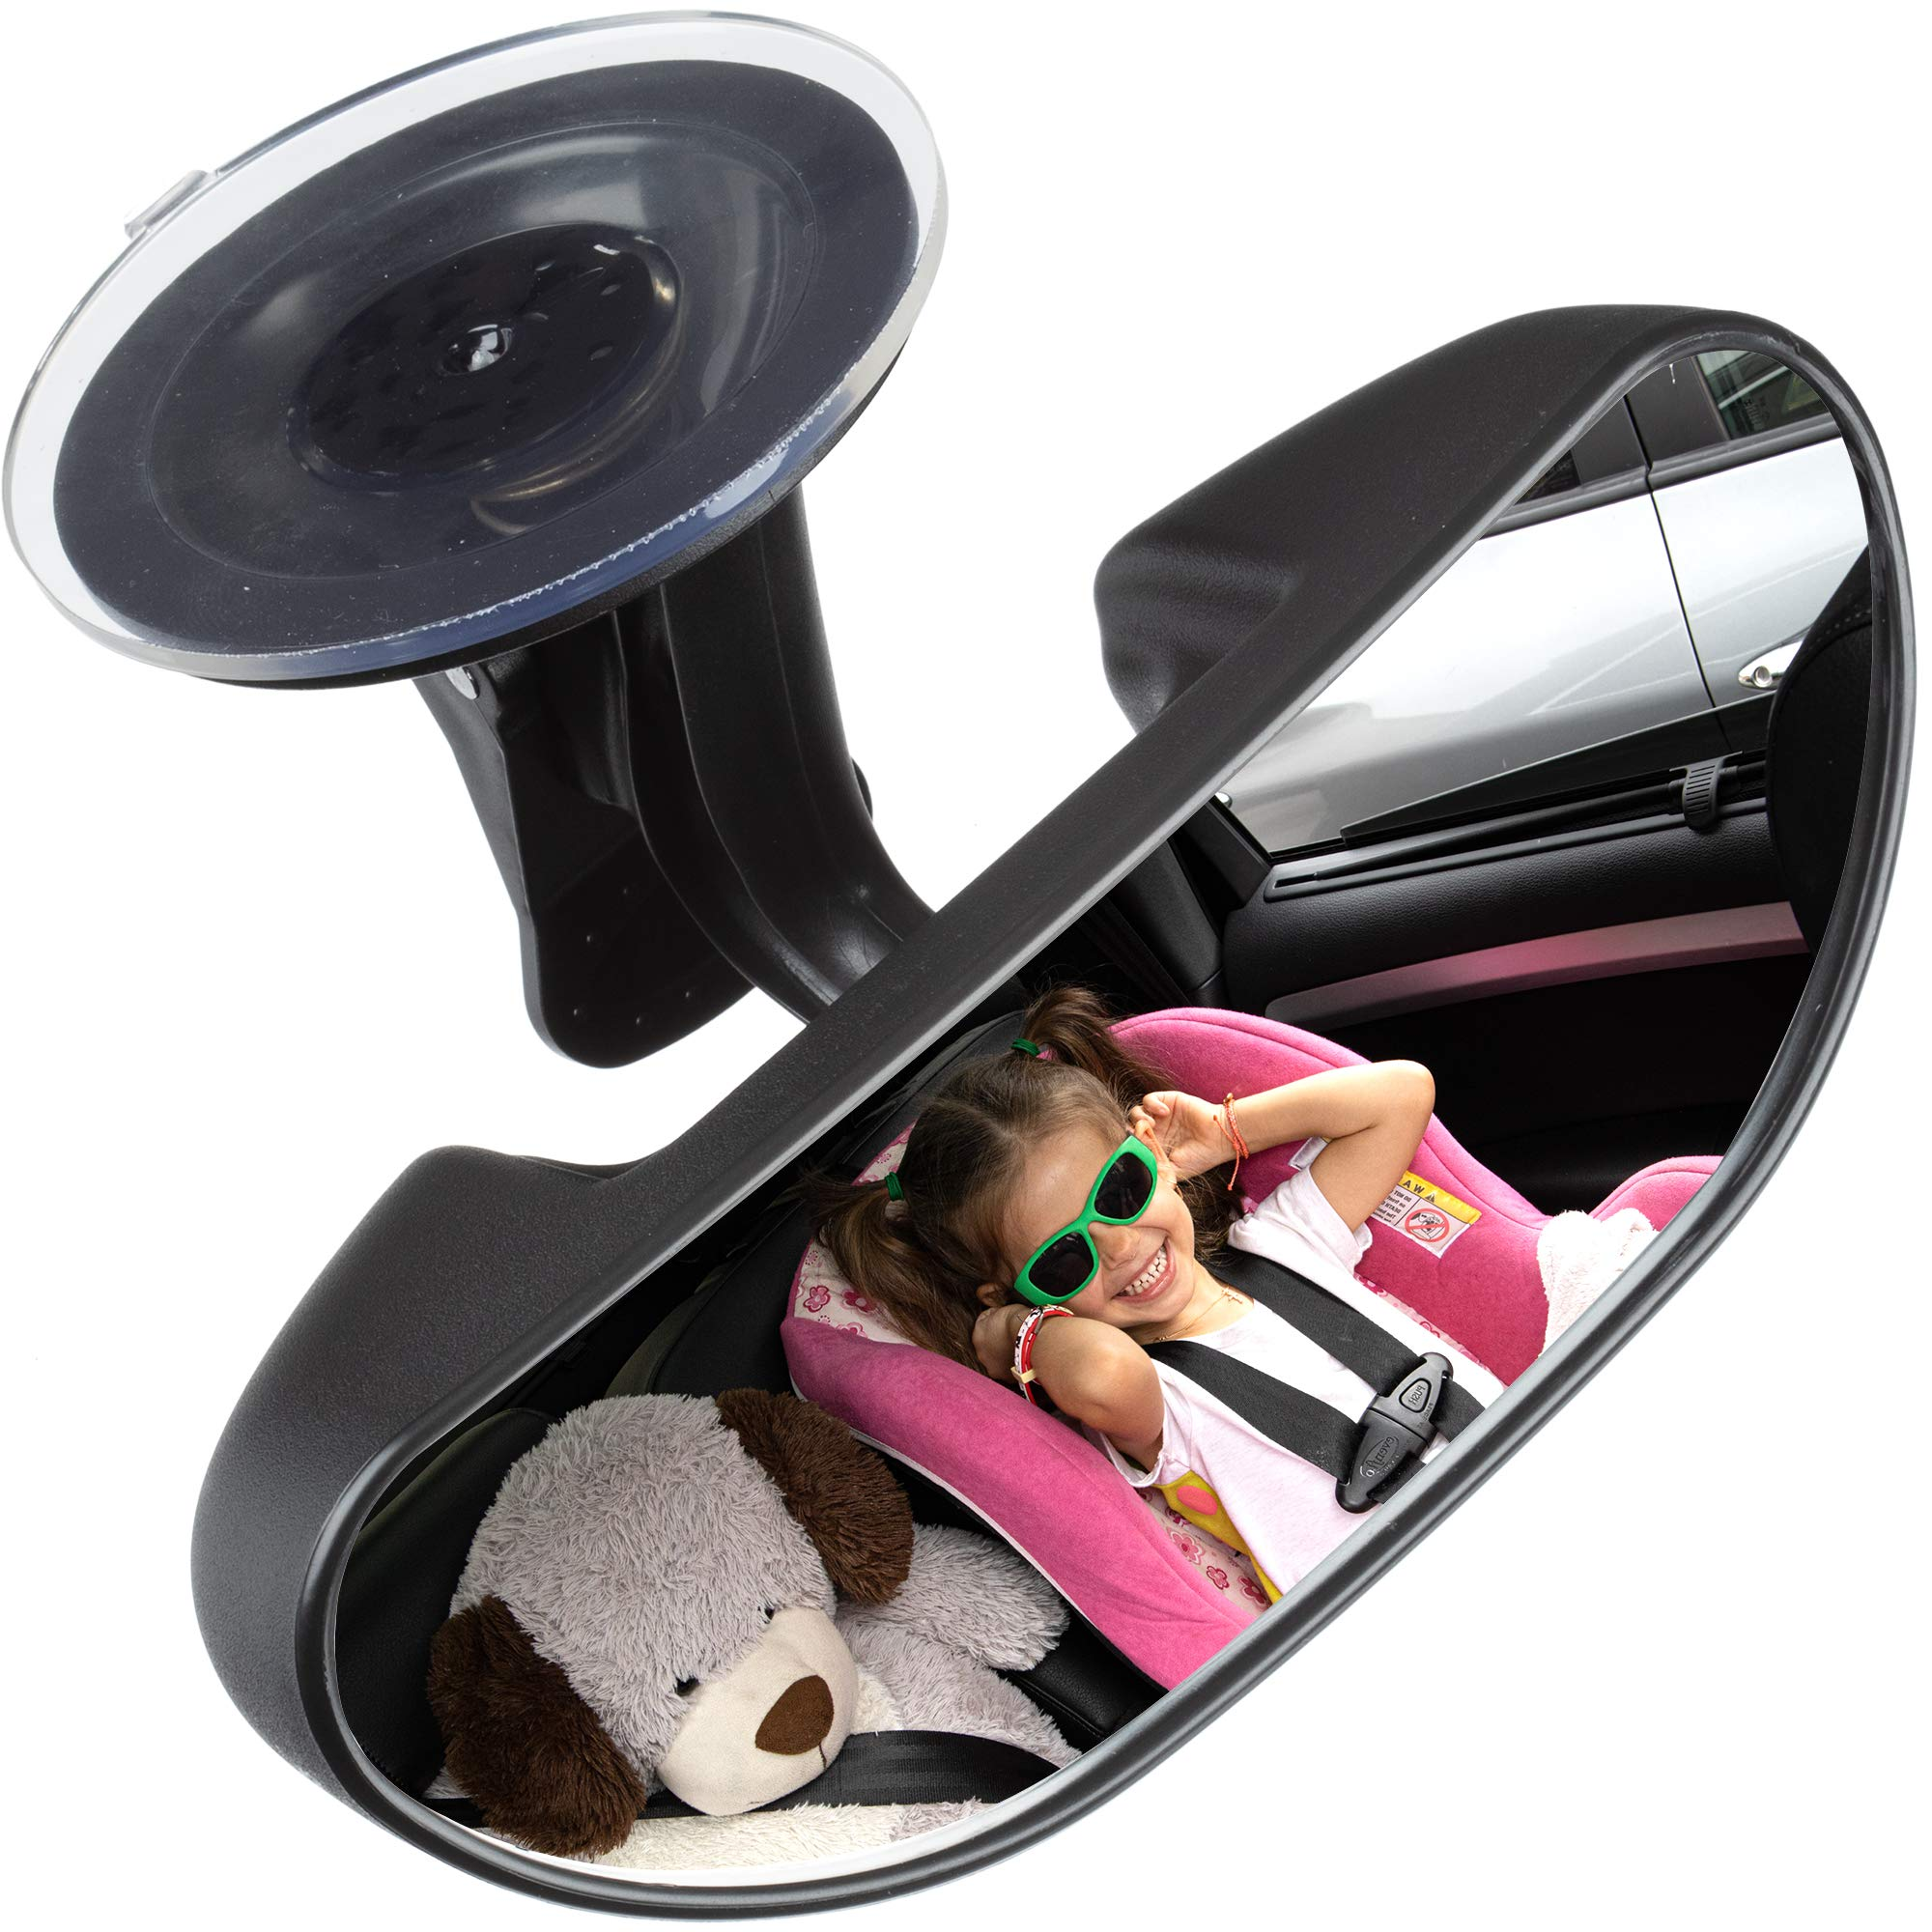 Baby Car Backseat Mirror, Rear View Facing Back Seat Mirror Child Safety Rearview Adjustable Rearview Wide Angle Convex Mirror for Infant Toddler Child Children Backseat passengers-Concept FiFi by Concept FiFi